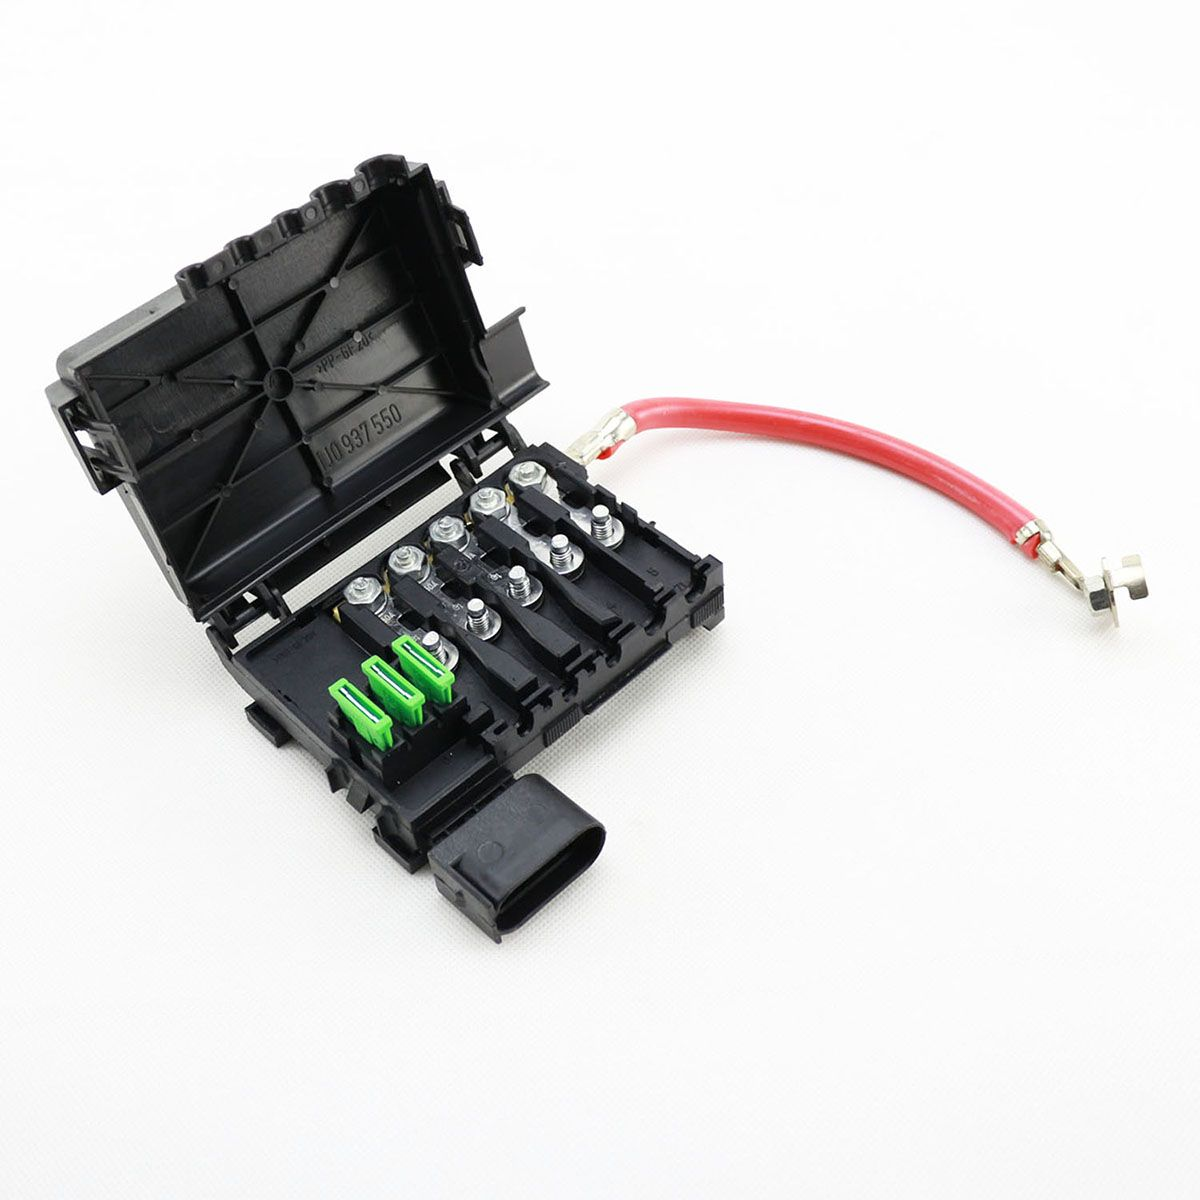 New Battery Terminal Fuse Box Holder For Vw Jetta Golf Mk4 Bora